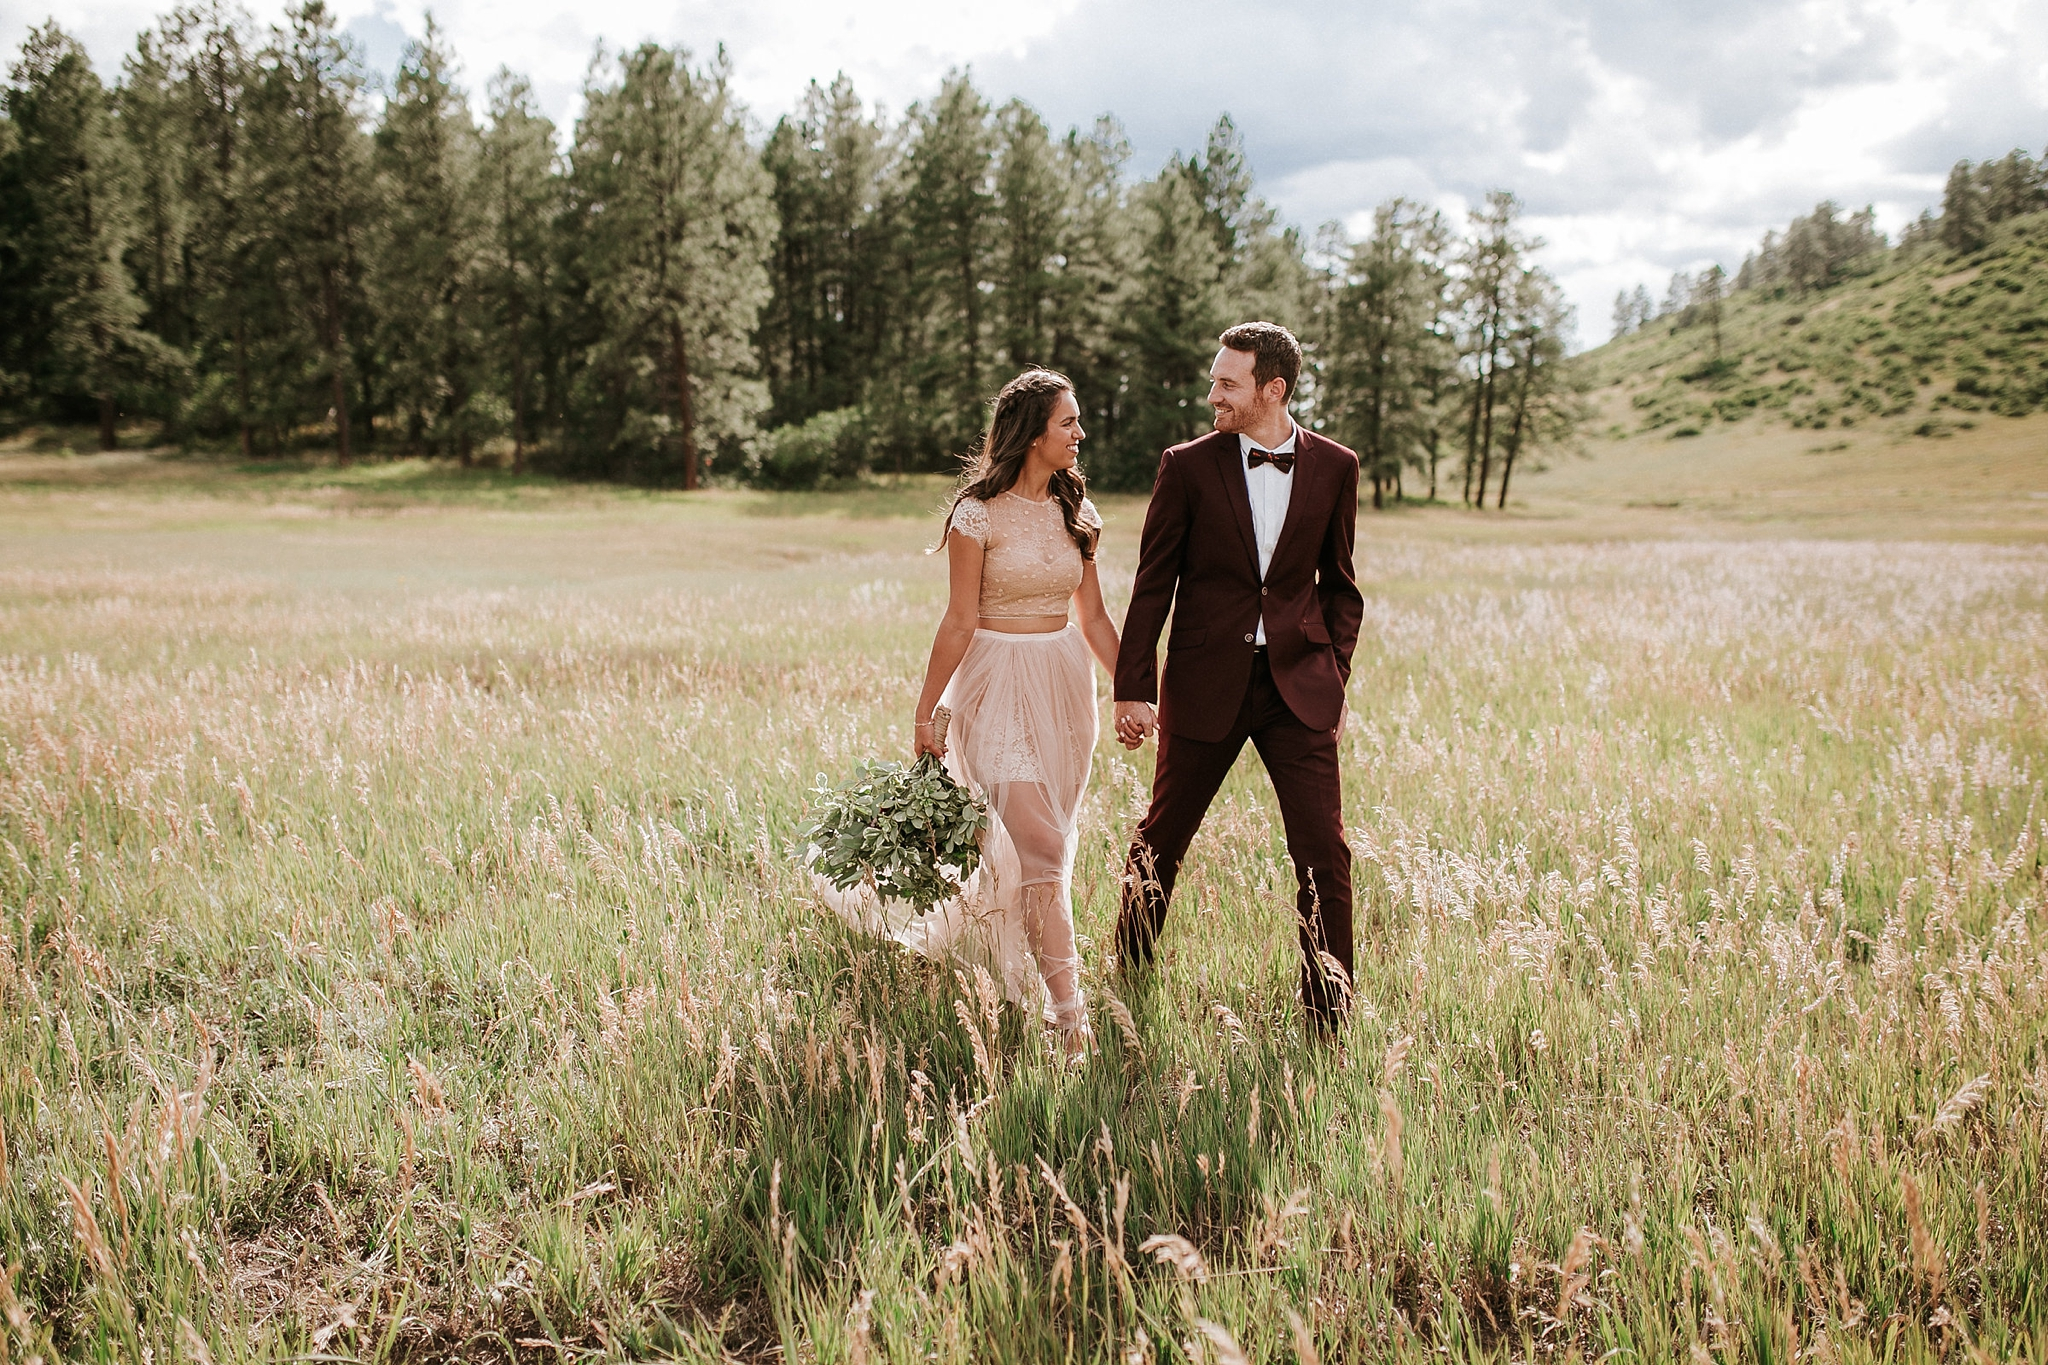 Alicia+lucia+photography+-+albuquerque+wedding+photographer+-+santa+fe+wedding+photography+-+new+mexico+wedding+photographer+-+albuquerque+wedding+-+santa+fe+wedding+-+wedding+gowns+-+non+traditional+wedding+gowns_0002.jpg